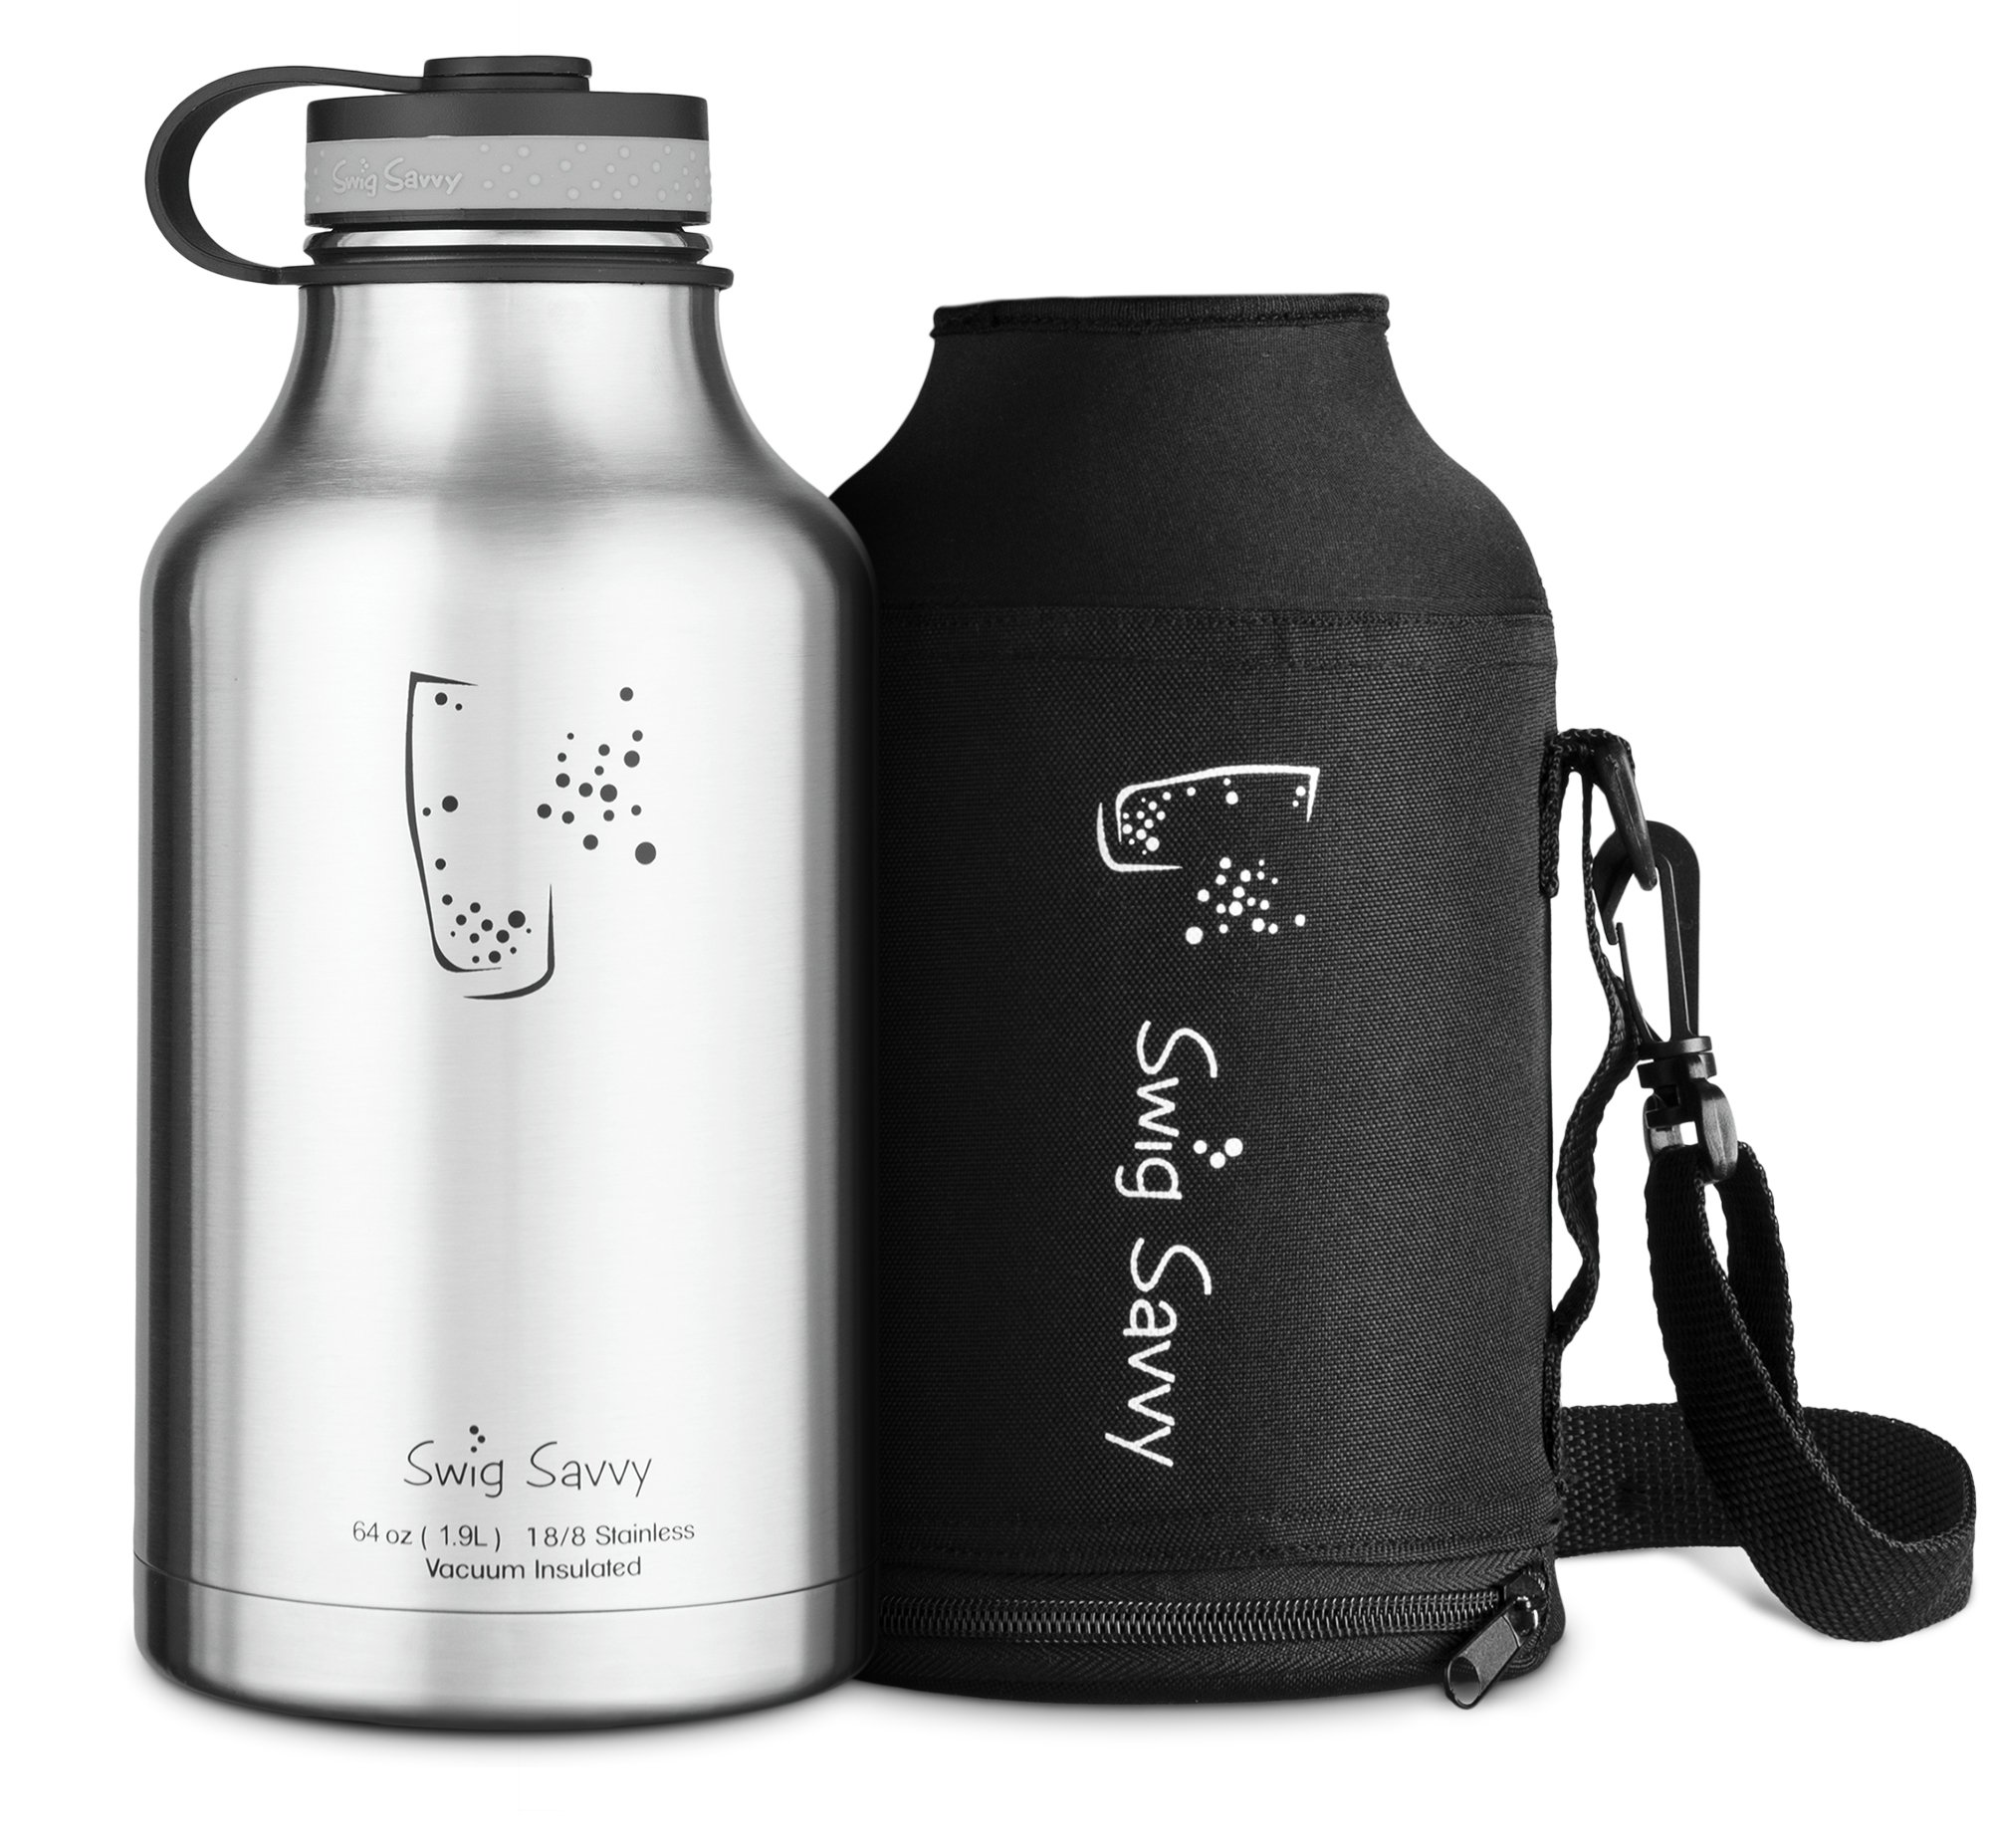 Swig Savvy S Stainless Steel Insulated Water Bottle And